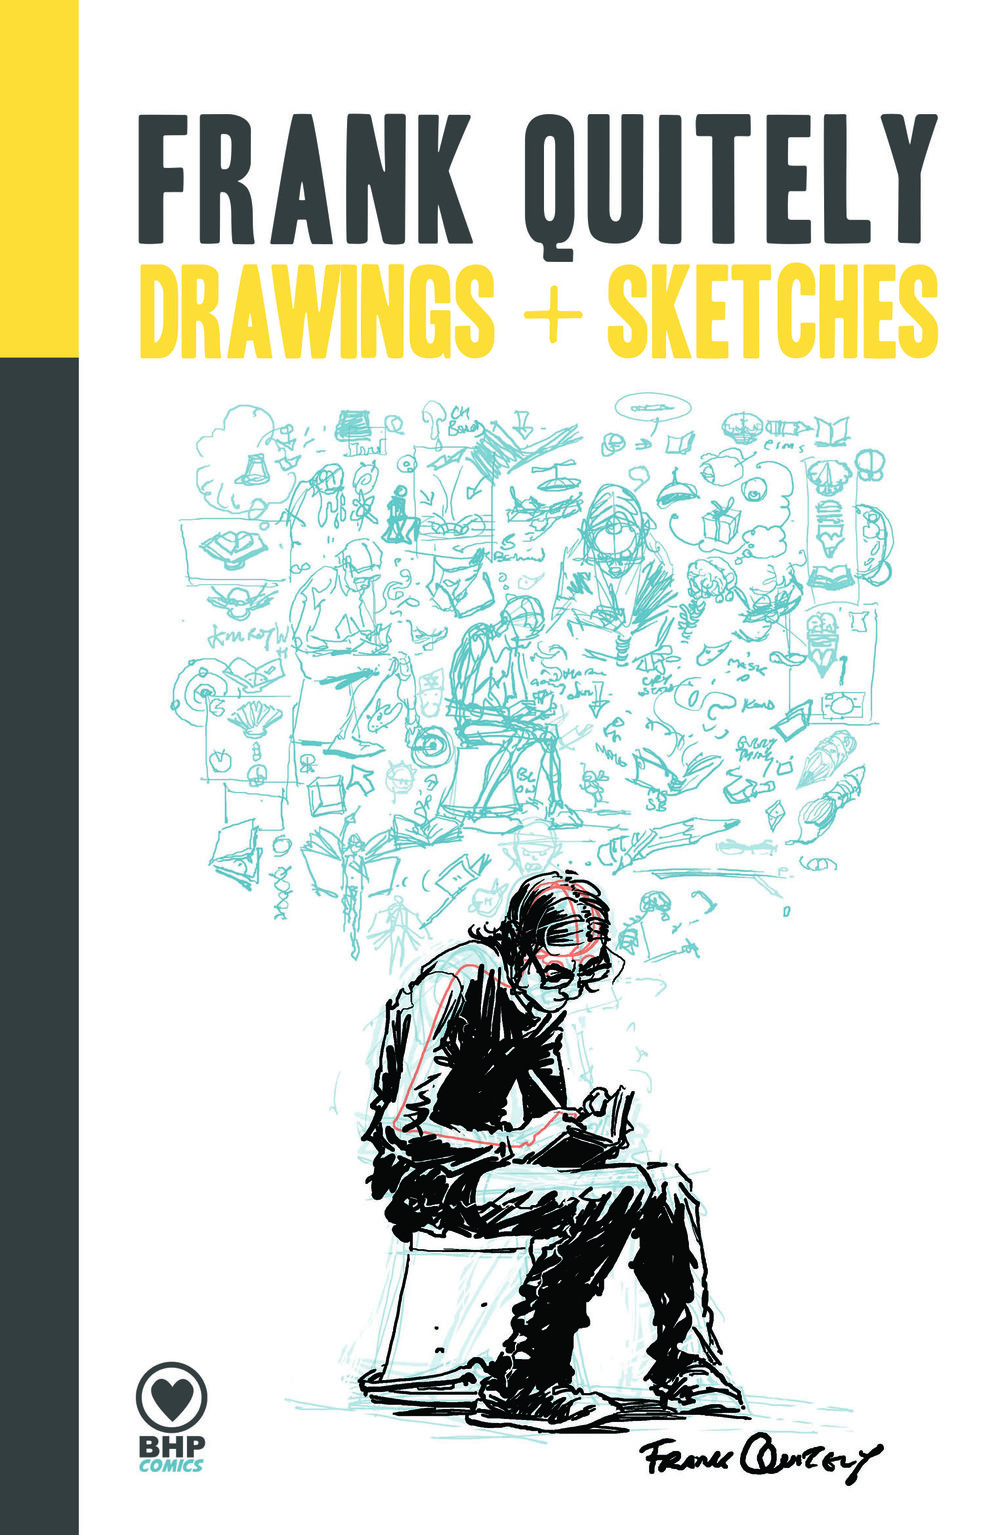 Pre-order now open -  We are thrilled to launch the pre-orders for Frank Quitely: Drawings+Sketches, our most recent book from this comics master. Delve through the pages of the private sketchbooks from a comics legend in Frank Quitely: Drawings + Sketches and follow the journey which produced some of the most iconic scenes in contemporary comics. In Drawings + Sketches, Quitely selects some of his favourite behind the scenes moments from such titles as WE3, Pax Americana, Jupiter's Legacy and more. Offering insights into the stories and processes behind them, this hard cover, full colour art book is a beautiful and inspiring must-have for any fan or aspiring comics creator.Pre-order your copy here!